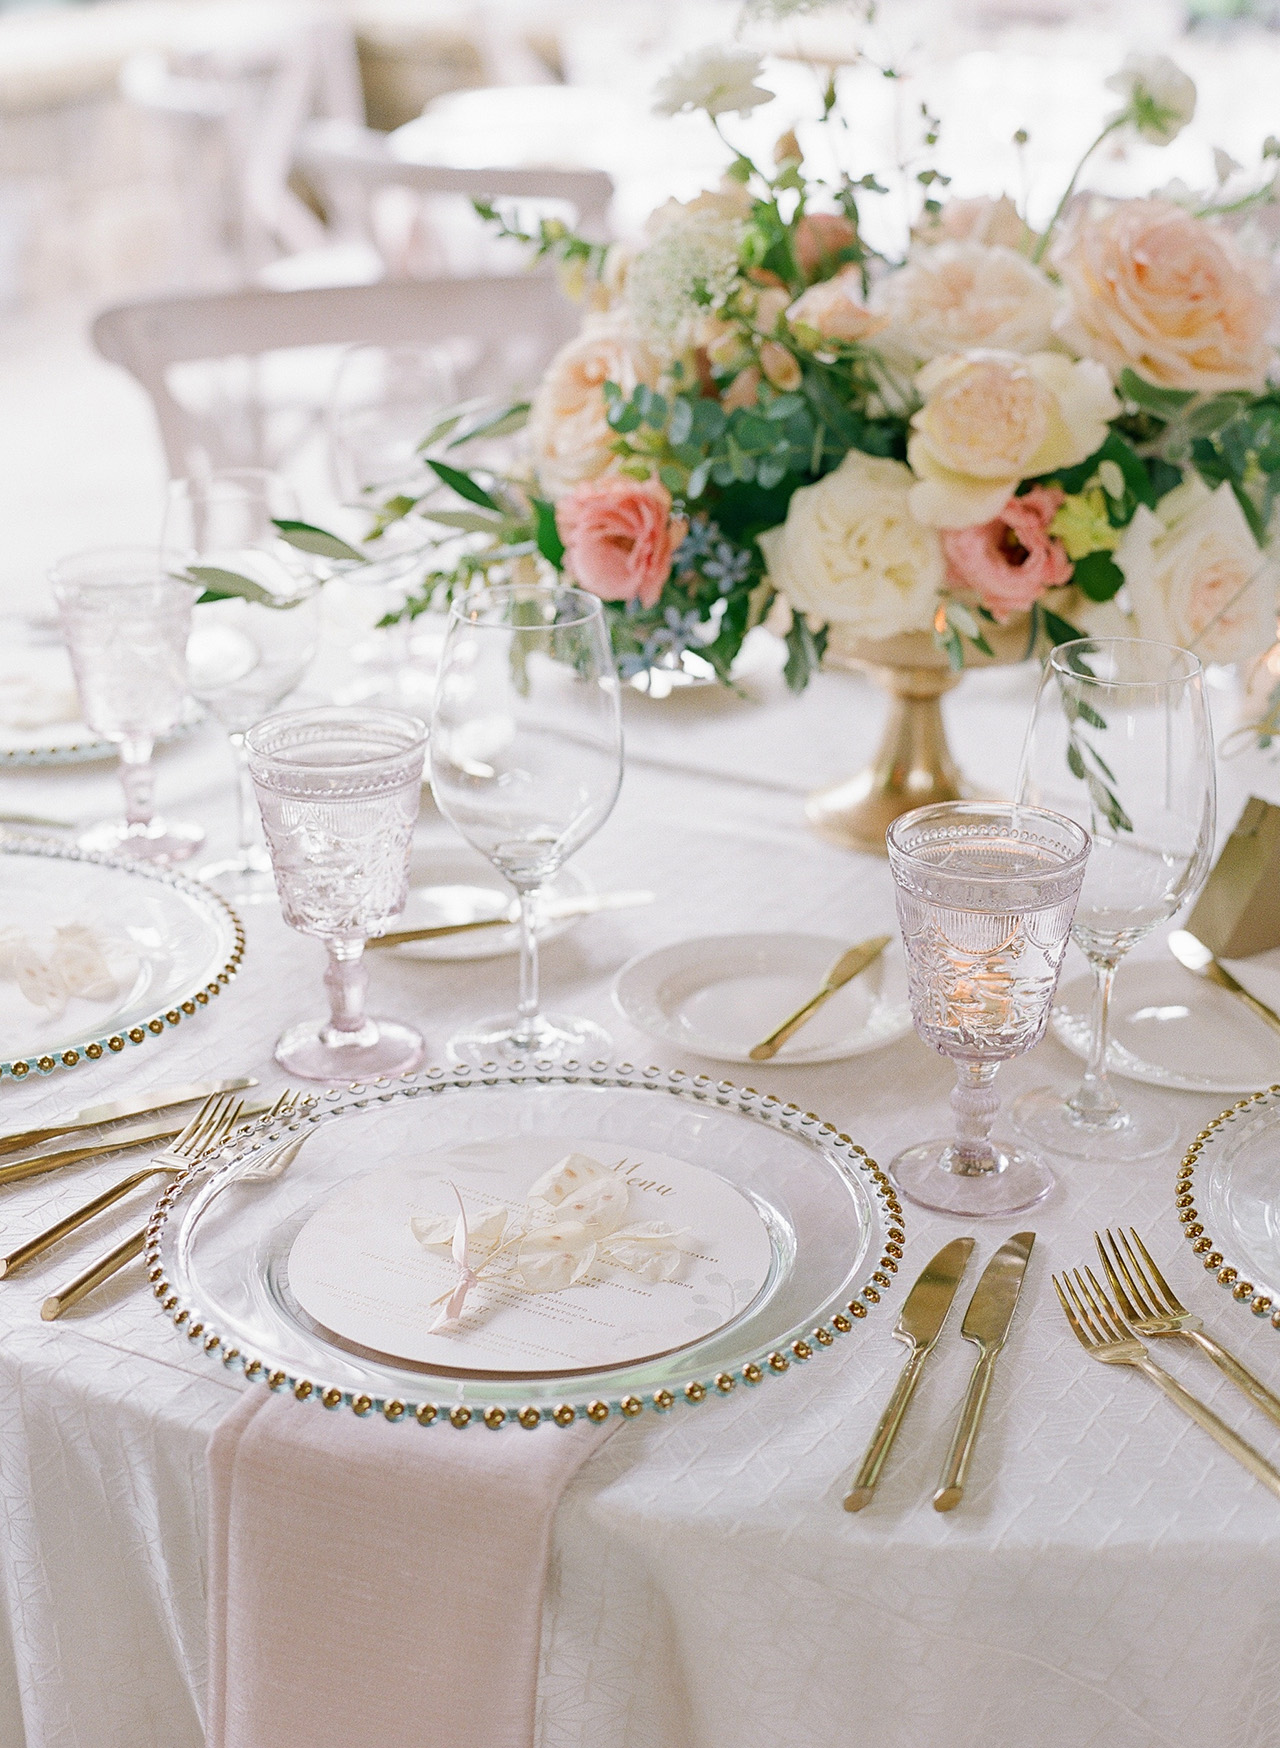 adrienne will wedding place settings reception tables